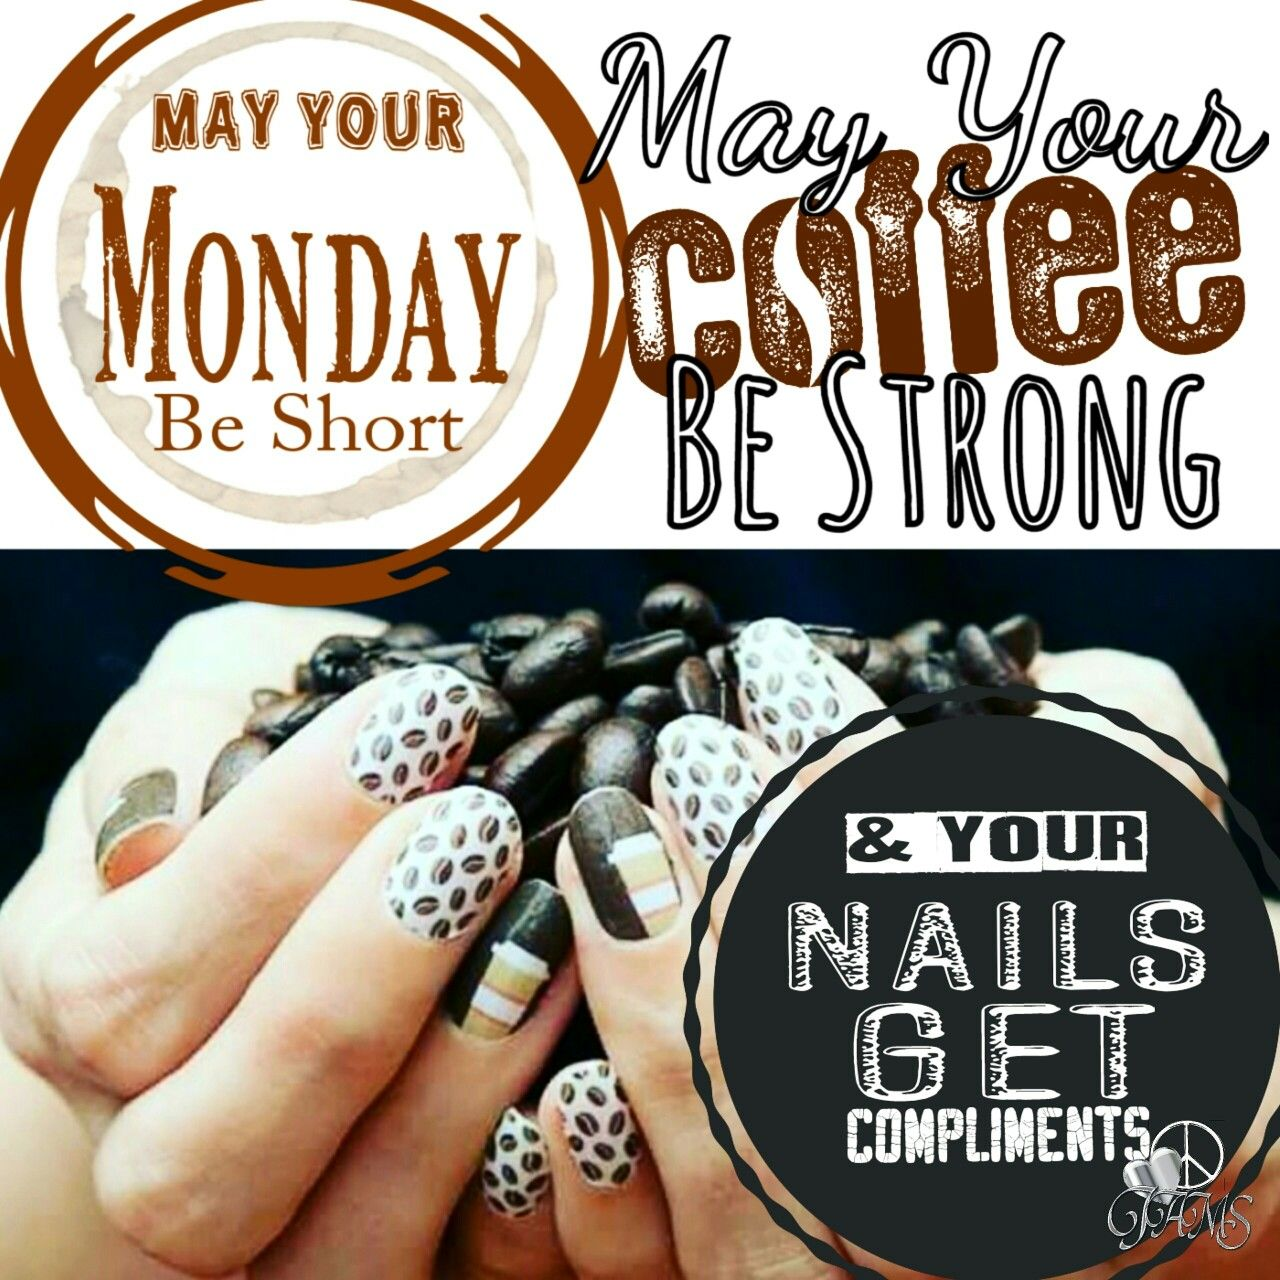 It's Monday again... May Your Monday Be Short, Your Coffee Be ... #mayYourCoffeeBeStrongQuote